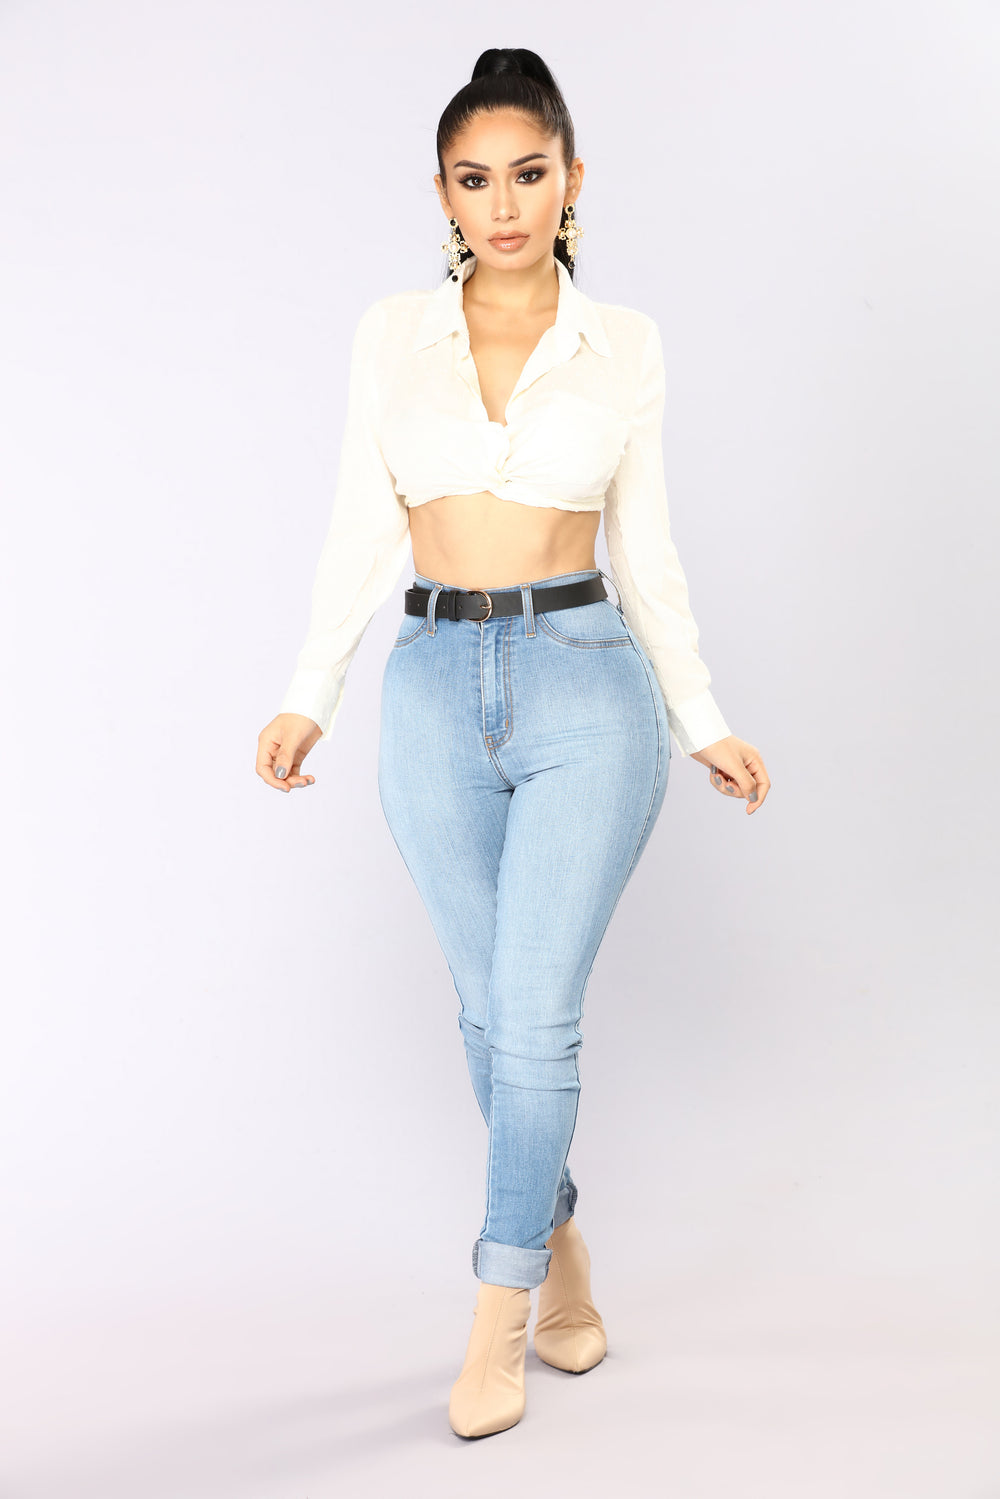 Knot Mad About It Top - Ivory